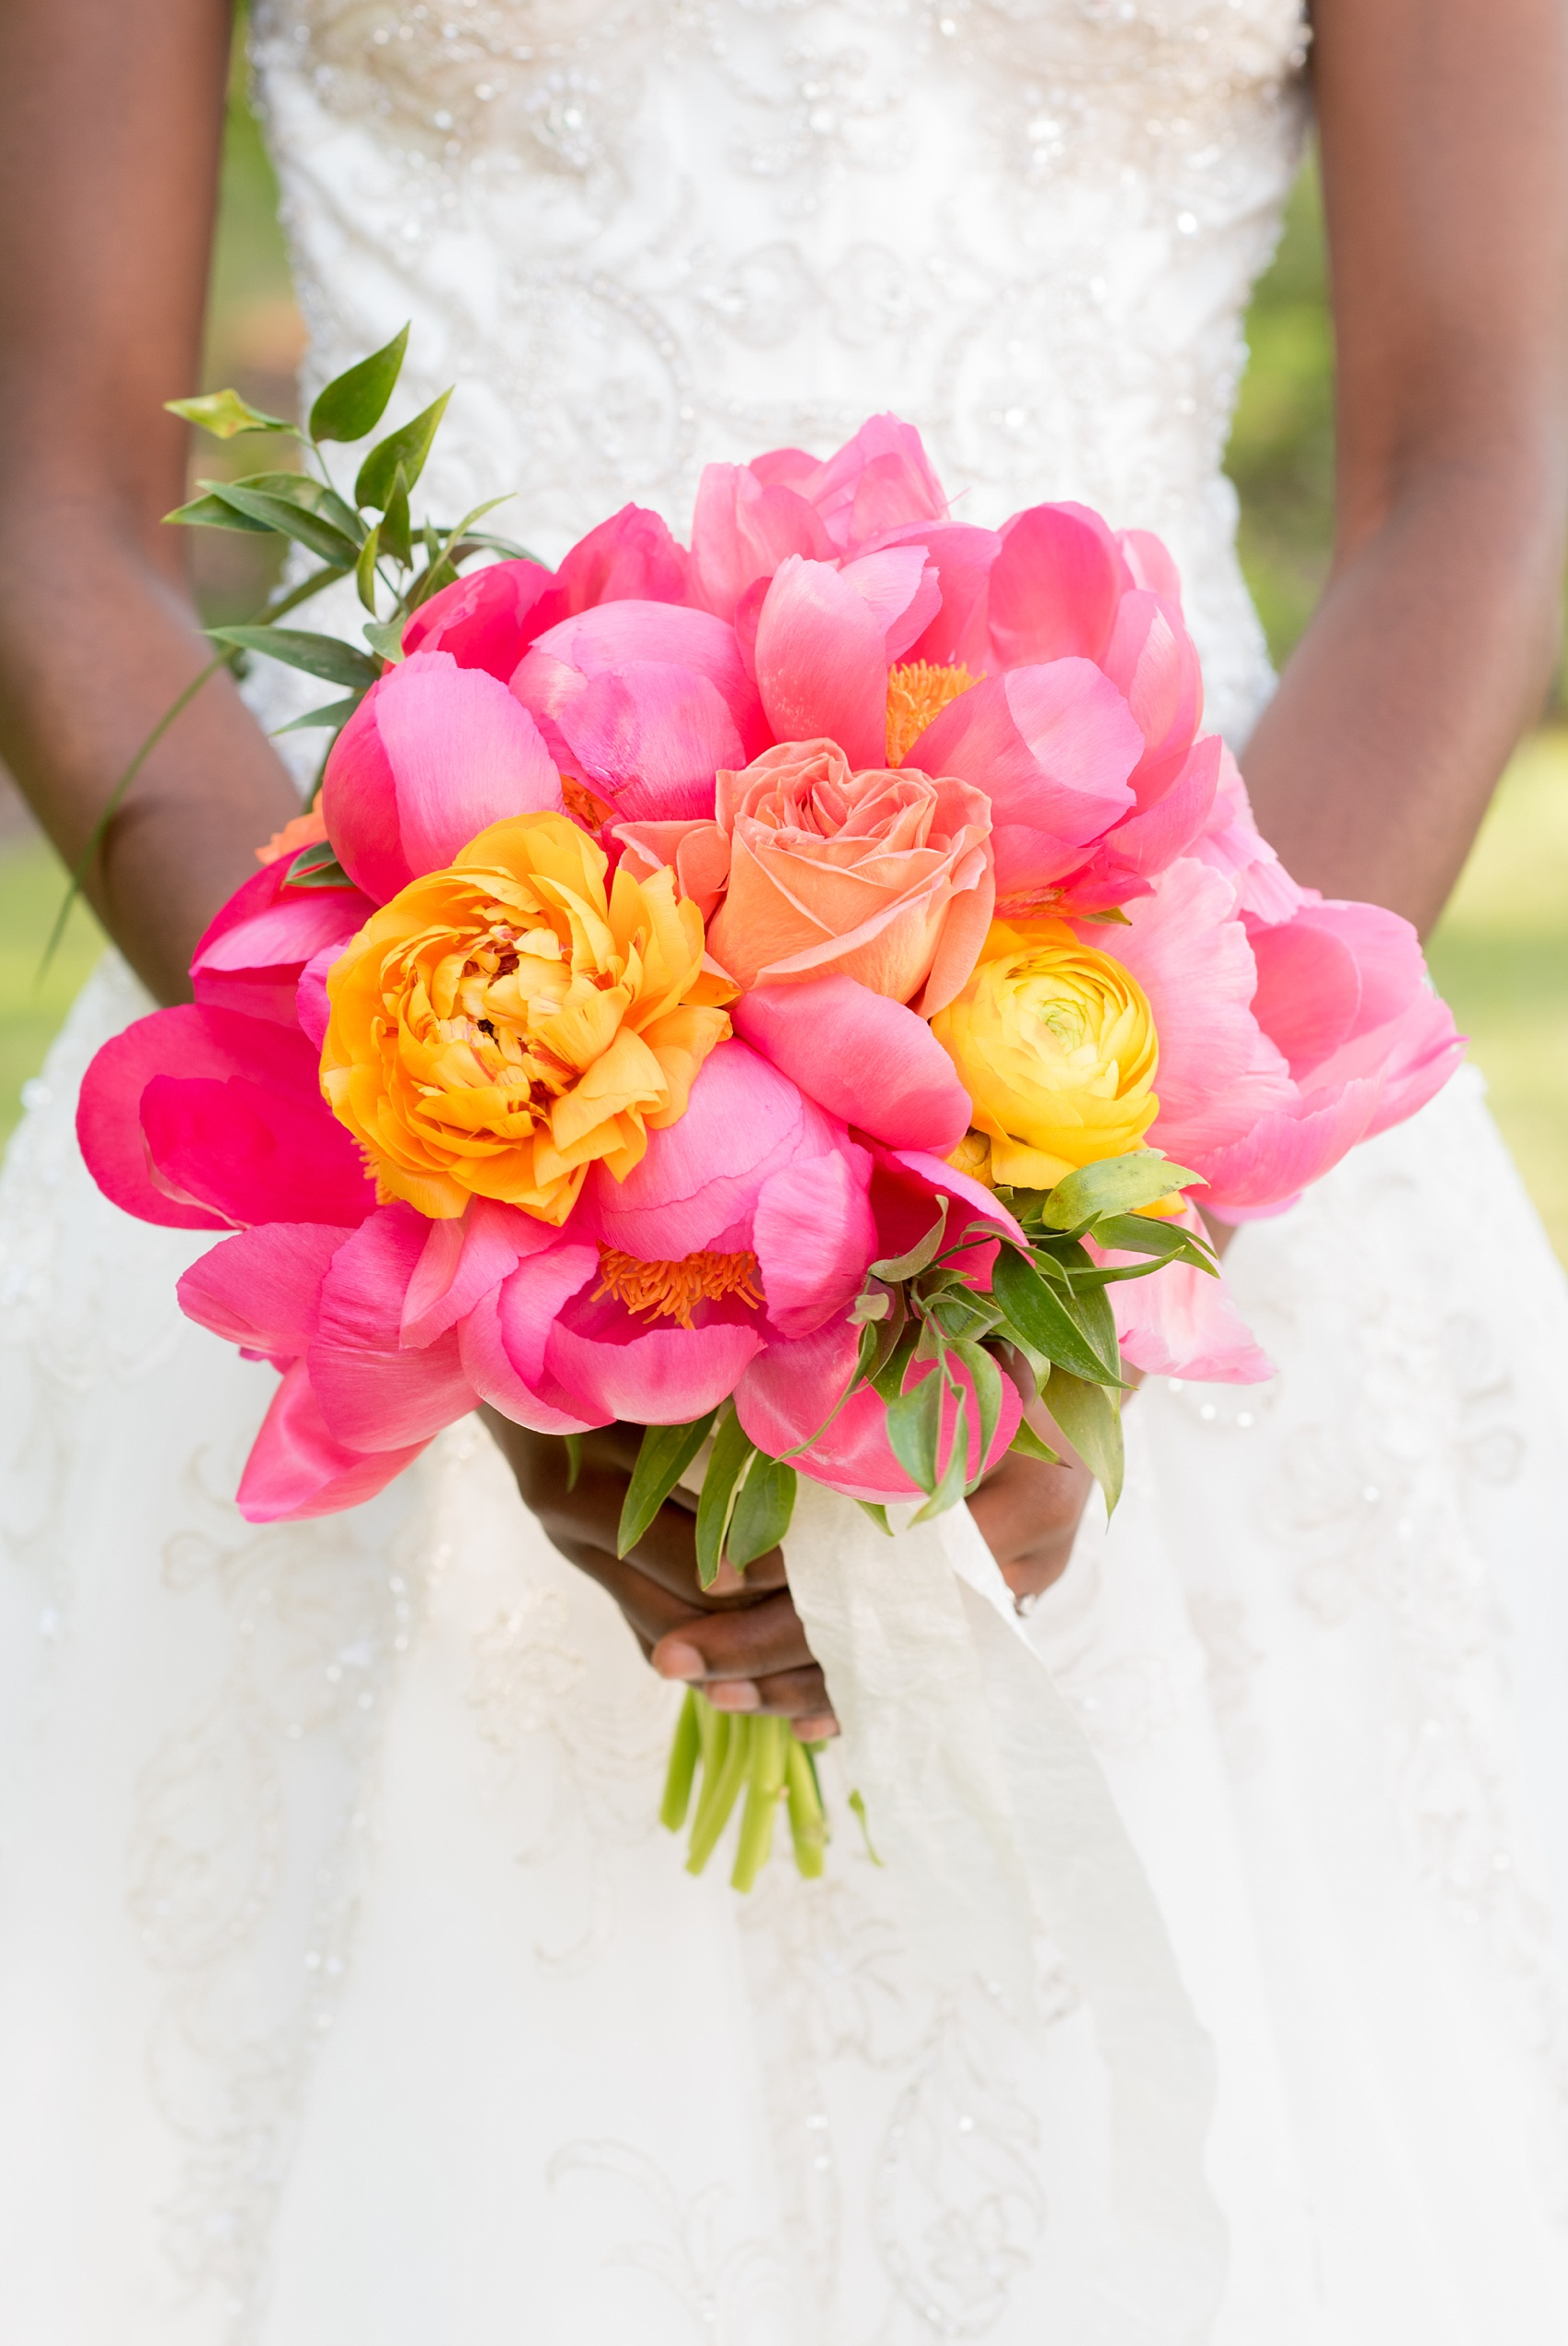 Mikkel Paige Photography wedding photo at The Bradford, NC. Bride's pink peony and yellow ranunculus bridal bouquet.